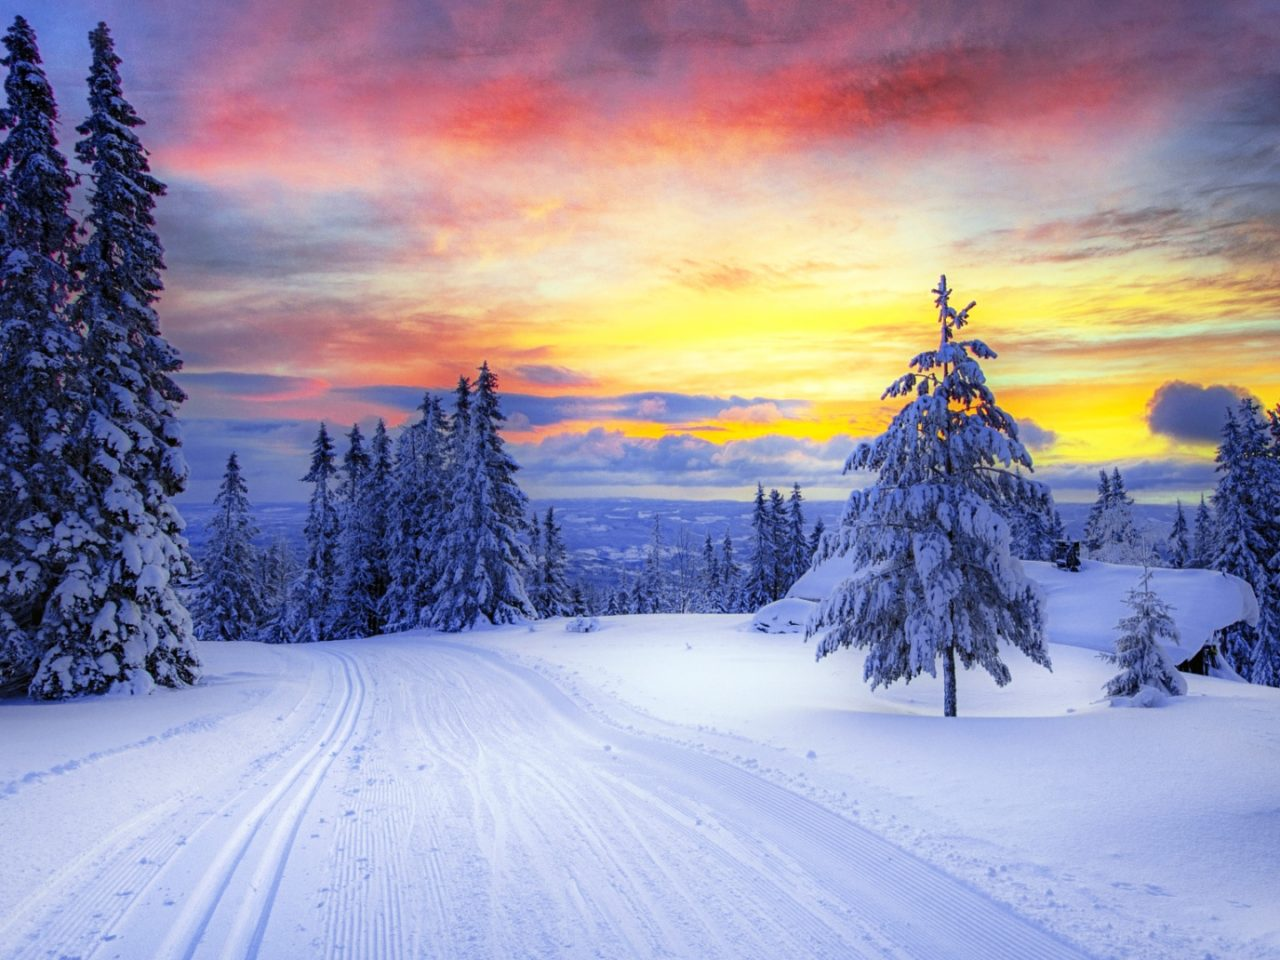 World Beautiful Cars Wallpapers Norway Winter Forest Snow Trees 1920x1080 Wallpapers13 Com